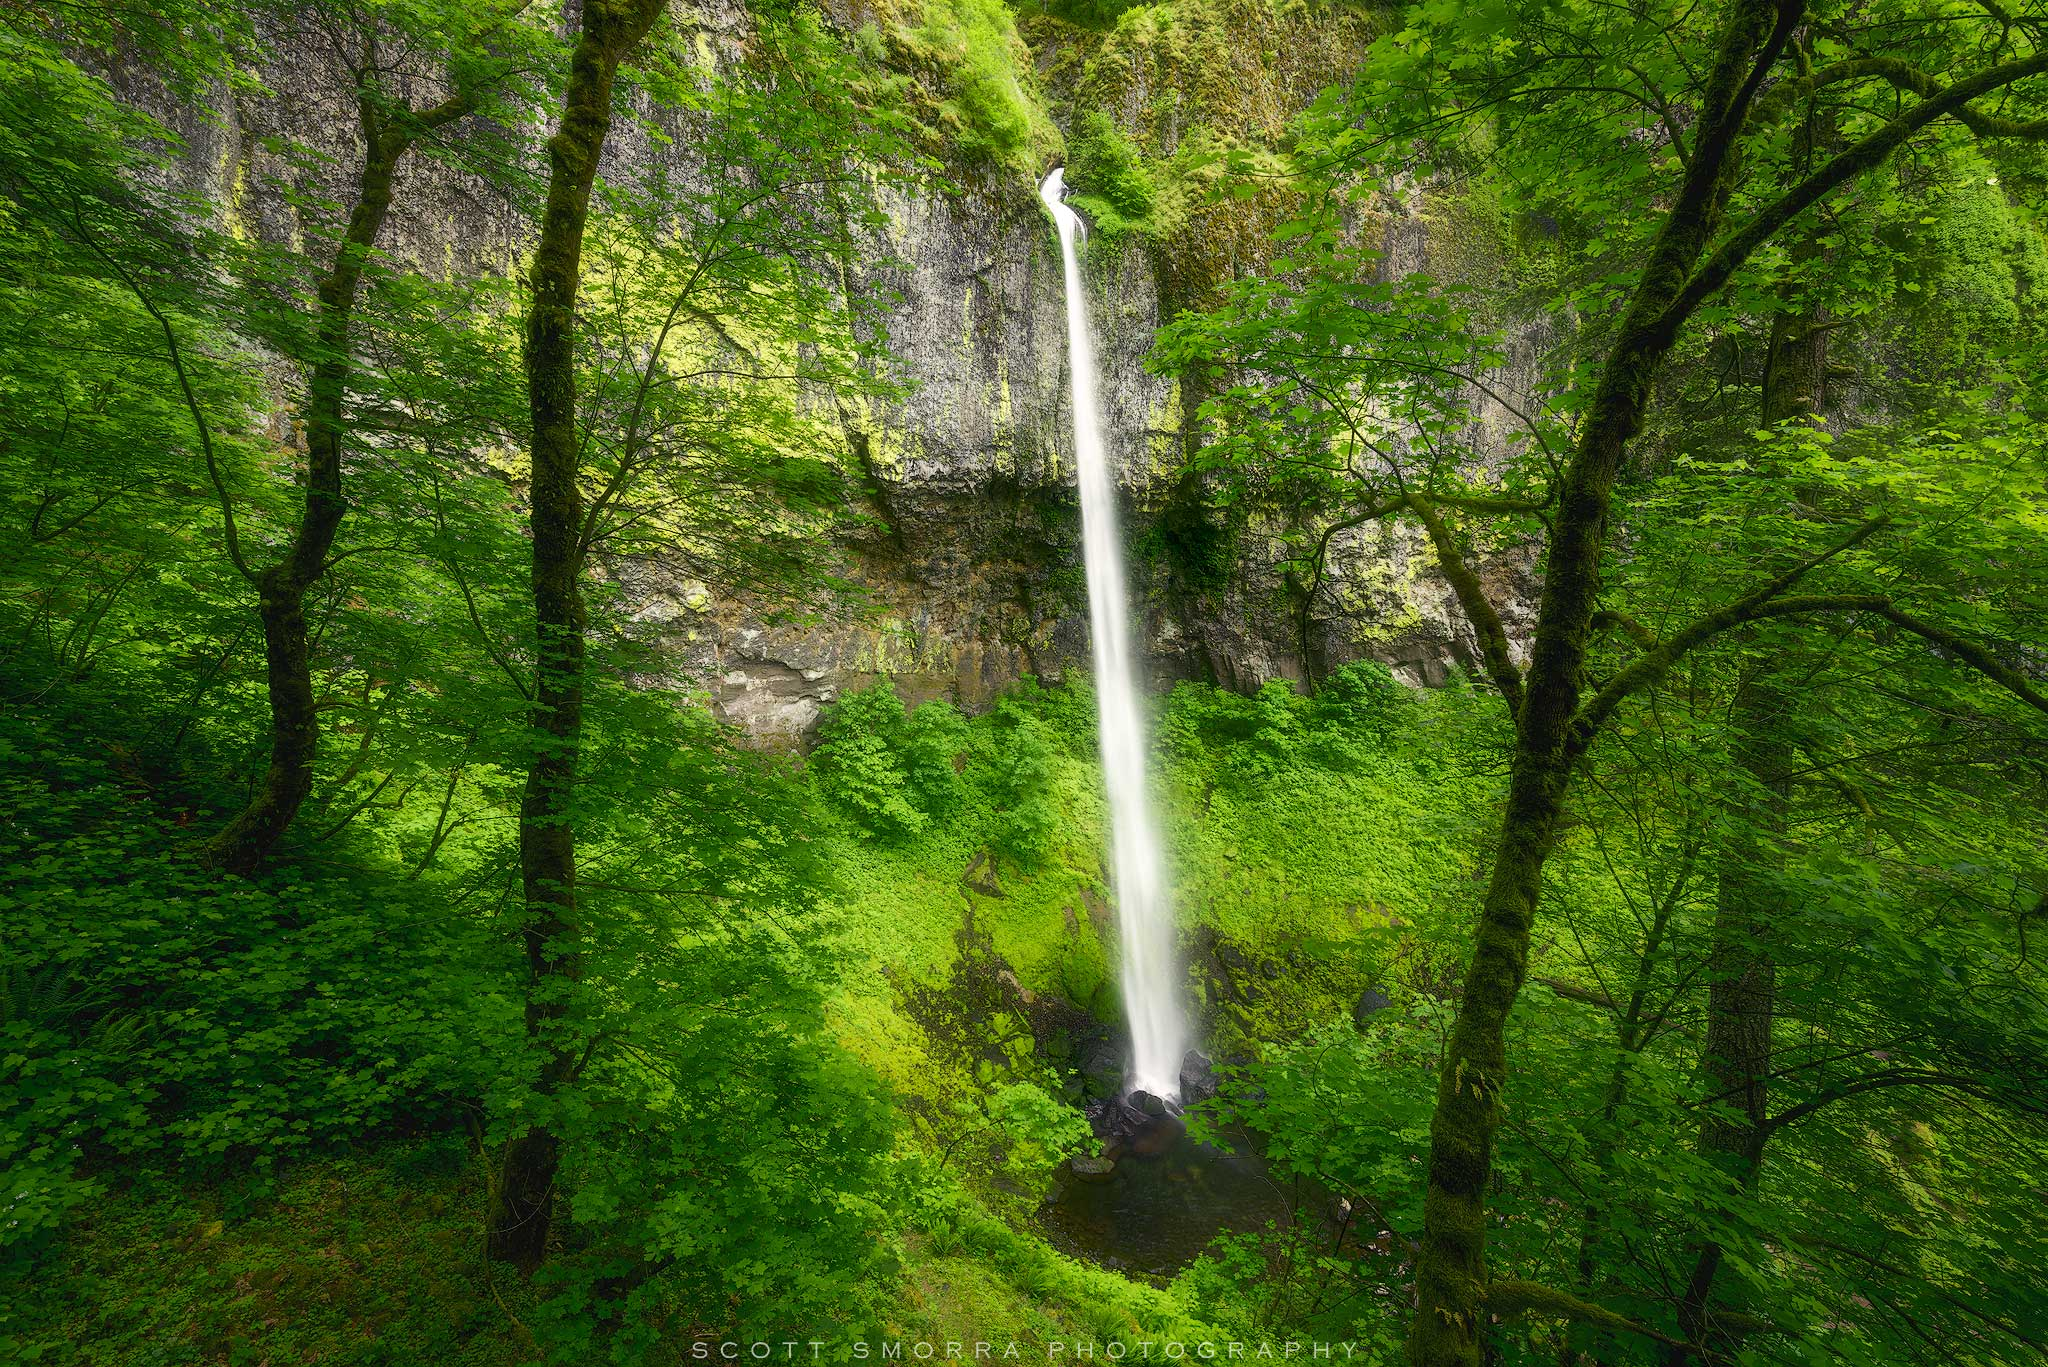 Fine Art Limited Edition of 50 - The majestic Elowah Falls surrounded by a lush springtime temperate rainforest in the Columbia...